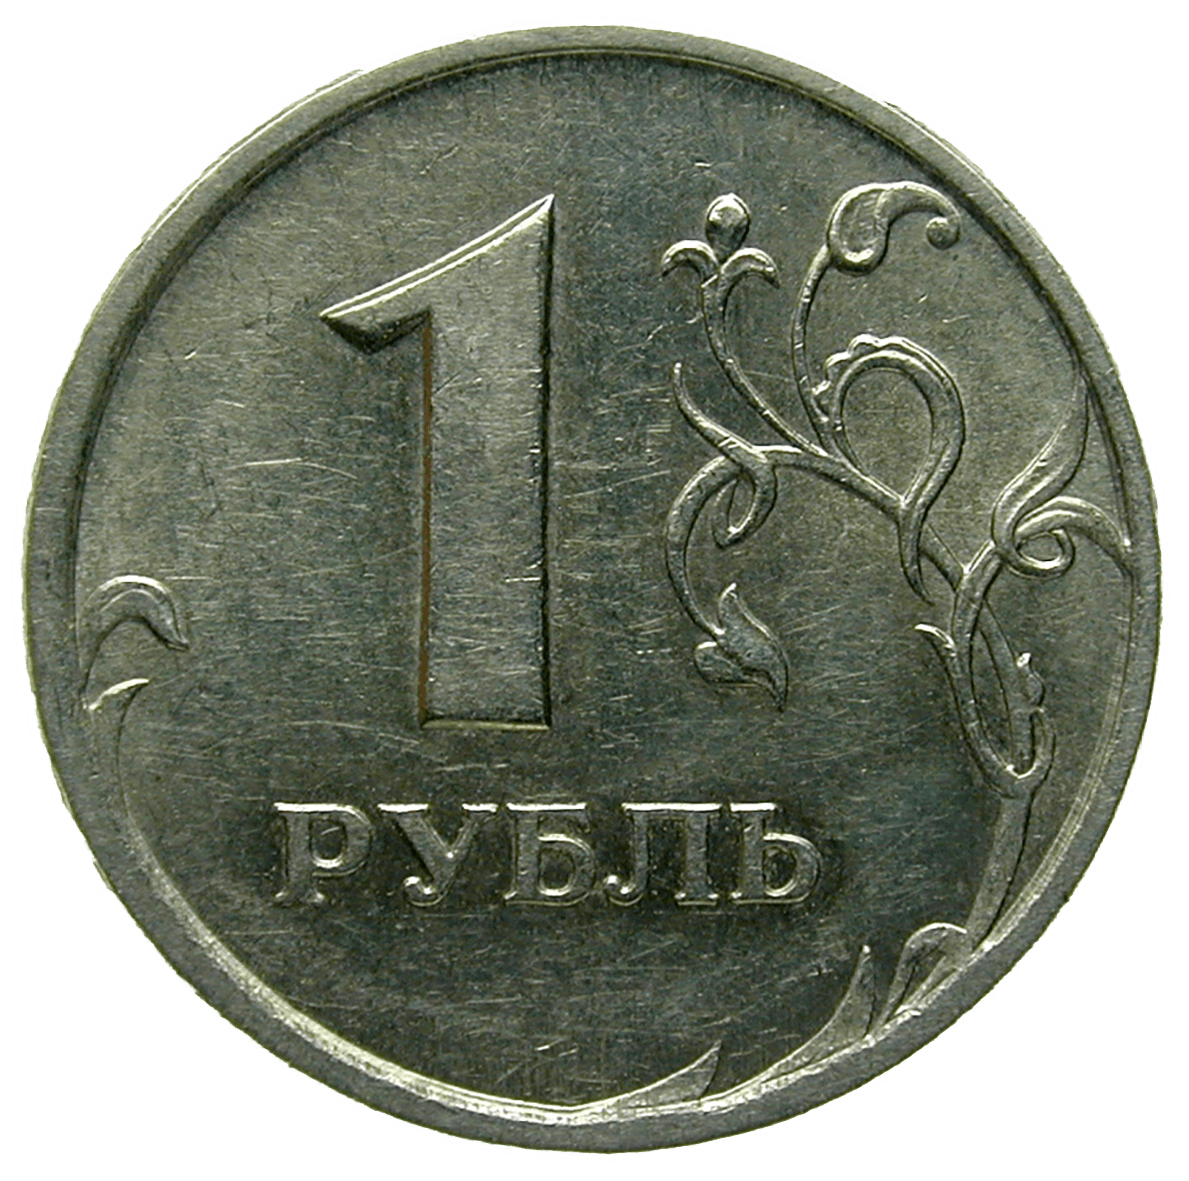 Russian Federation, 1 Ruble 1997 (reverse)